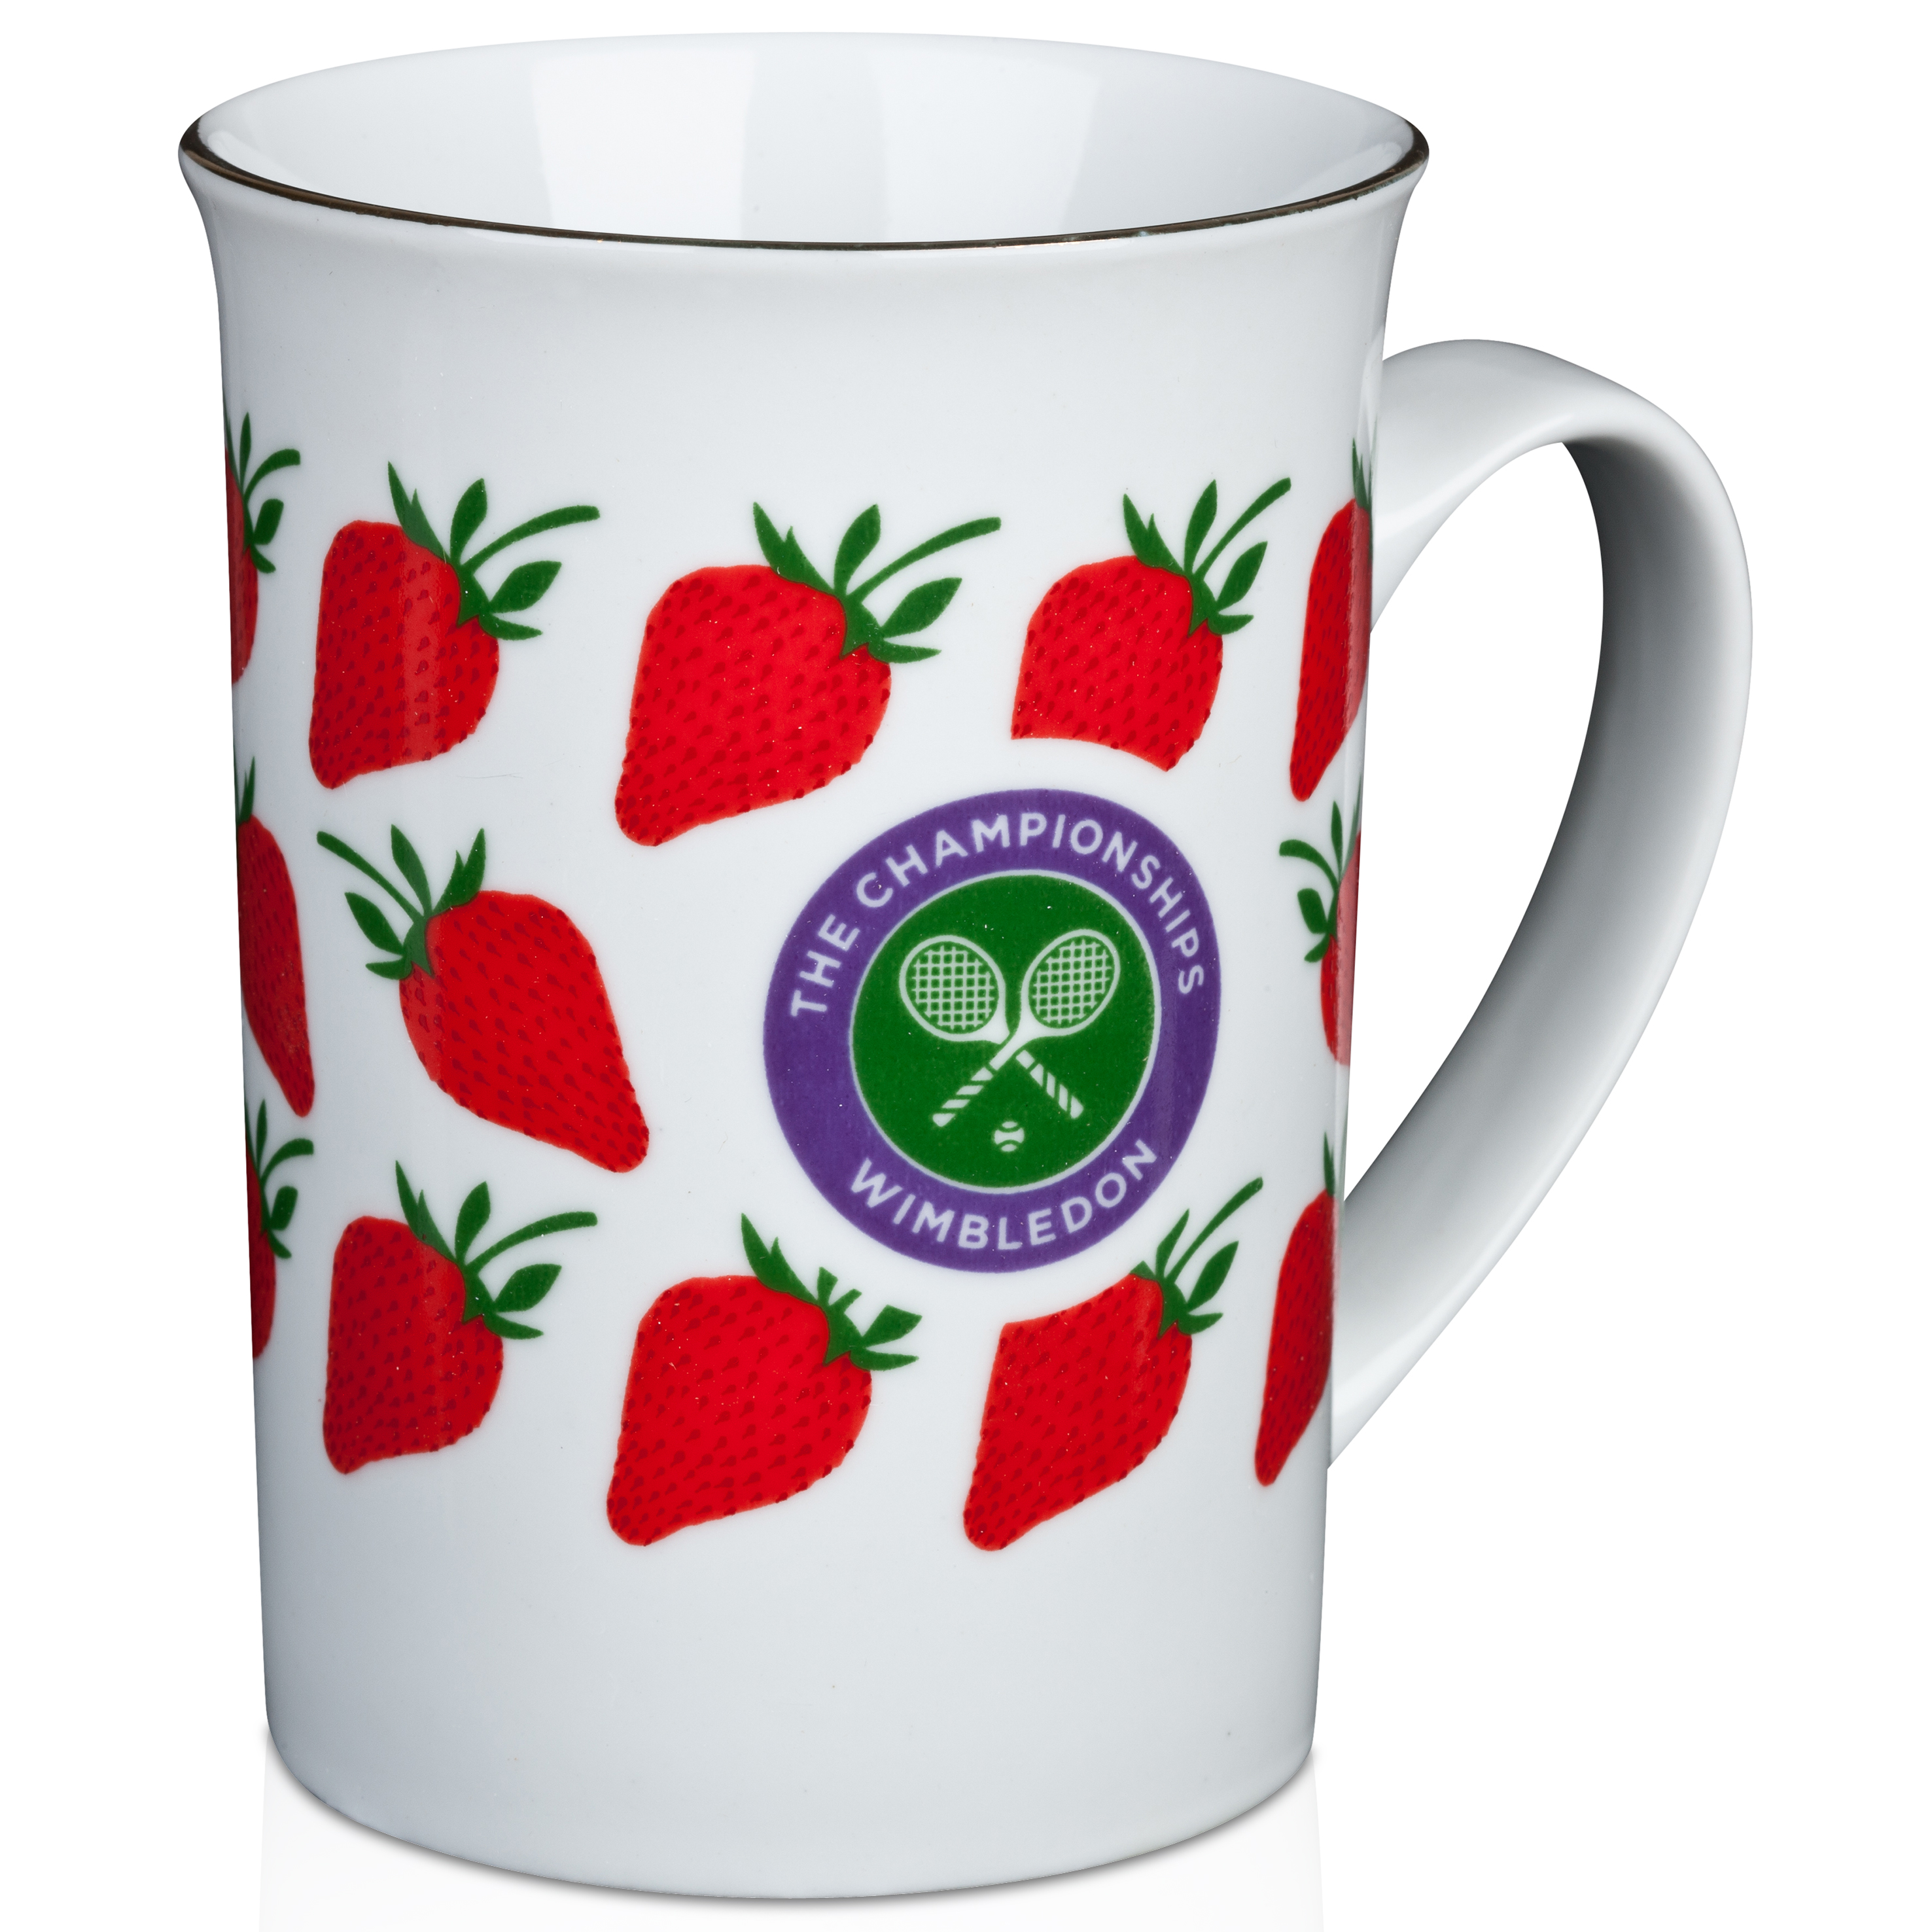 Wimbledon Strawberry Mug